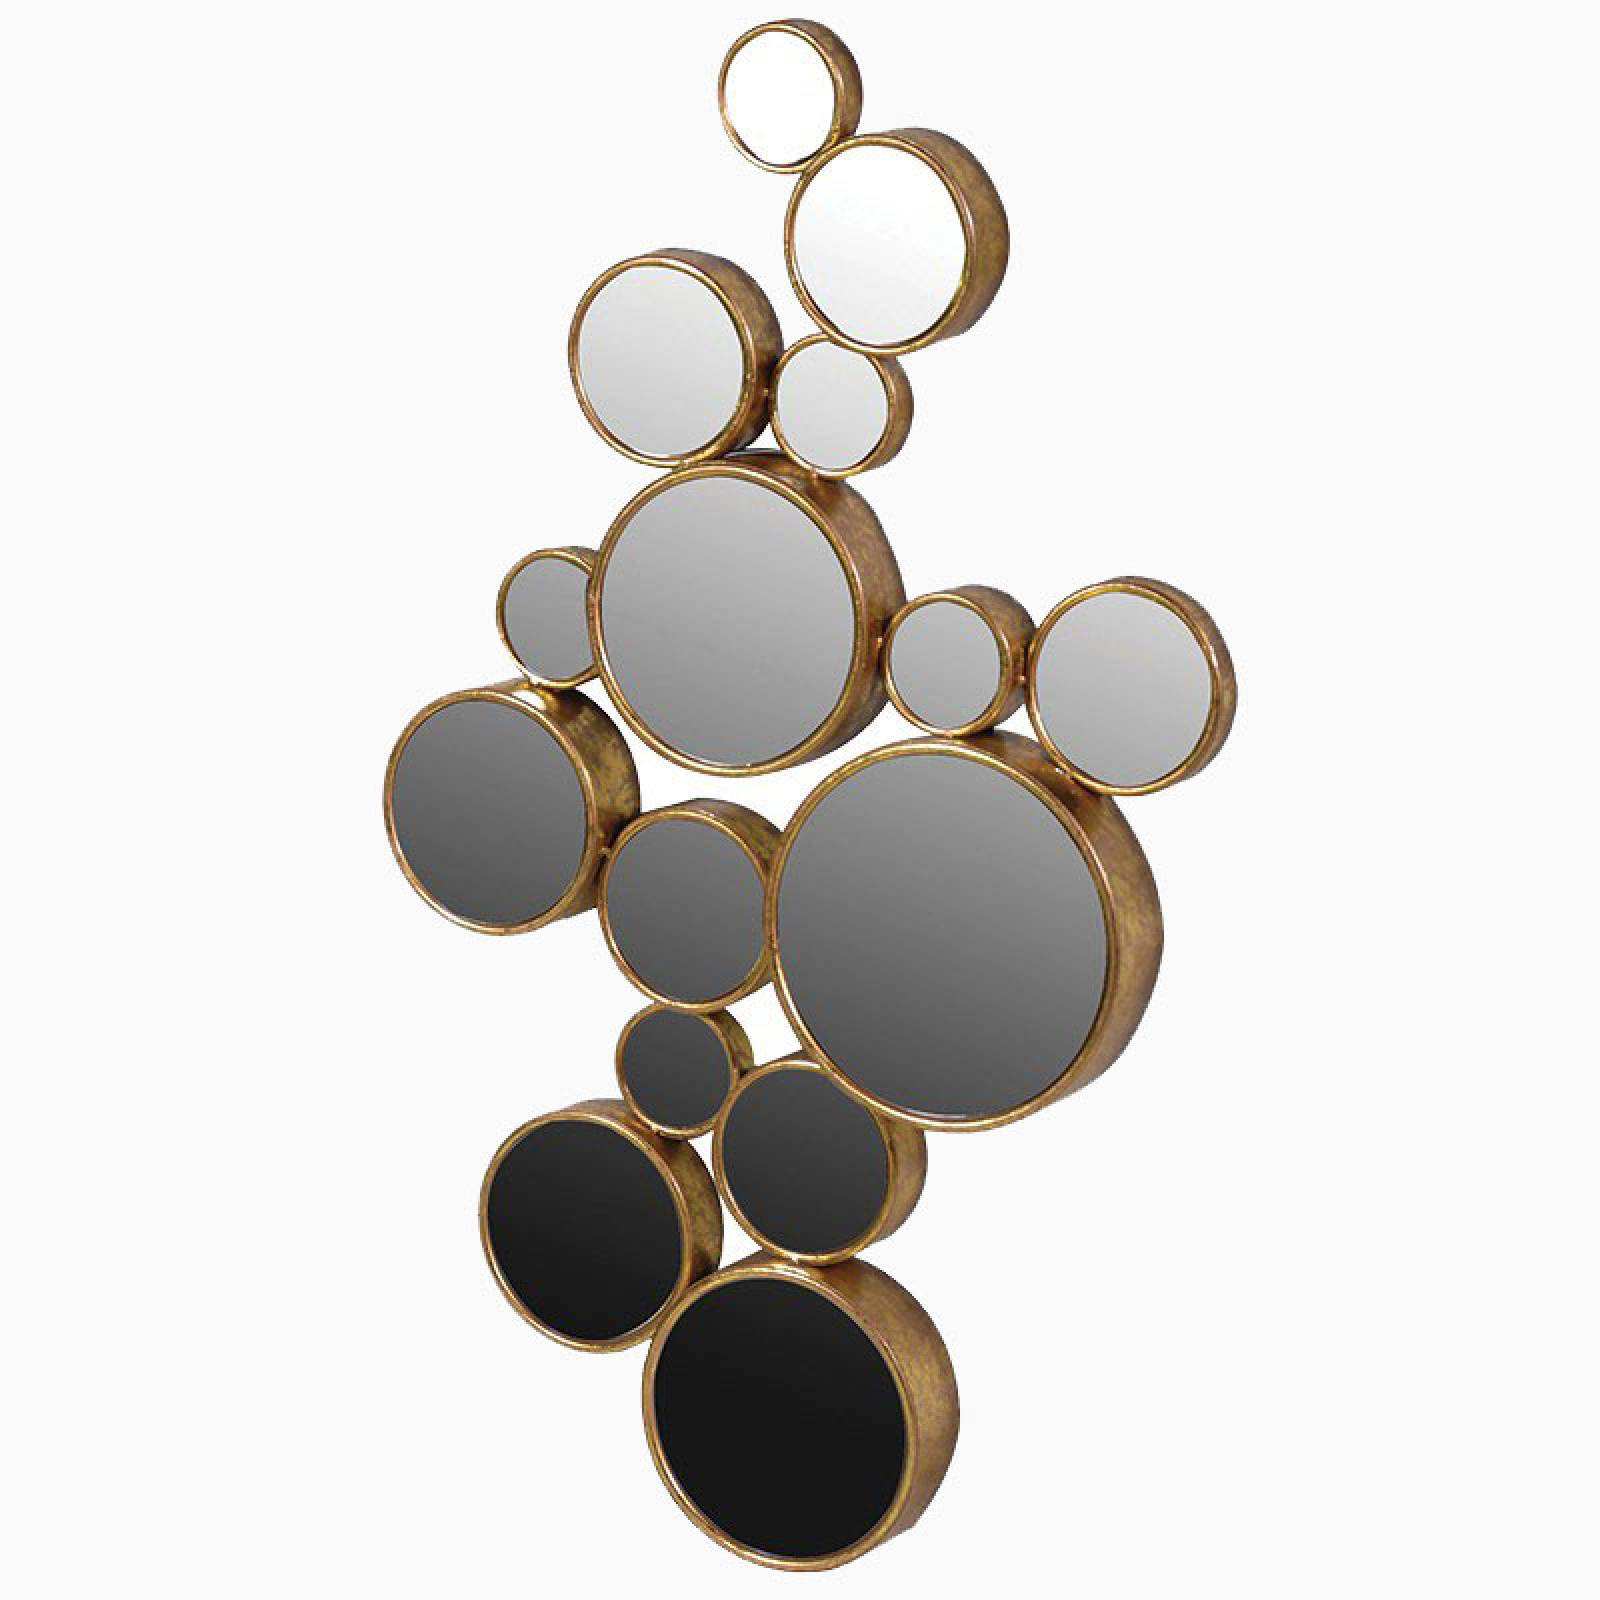 Large Circles Mirror - 15 Round Gold Mirrors 61x103cm. thumbnails